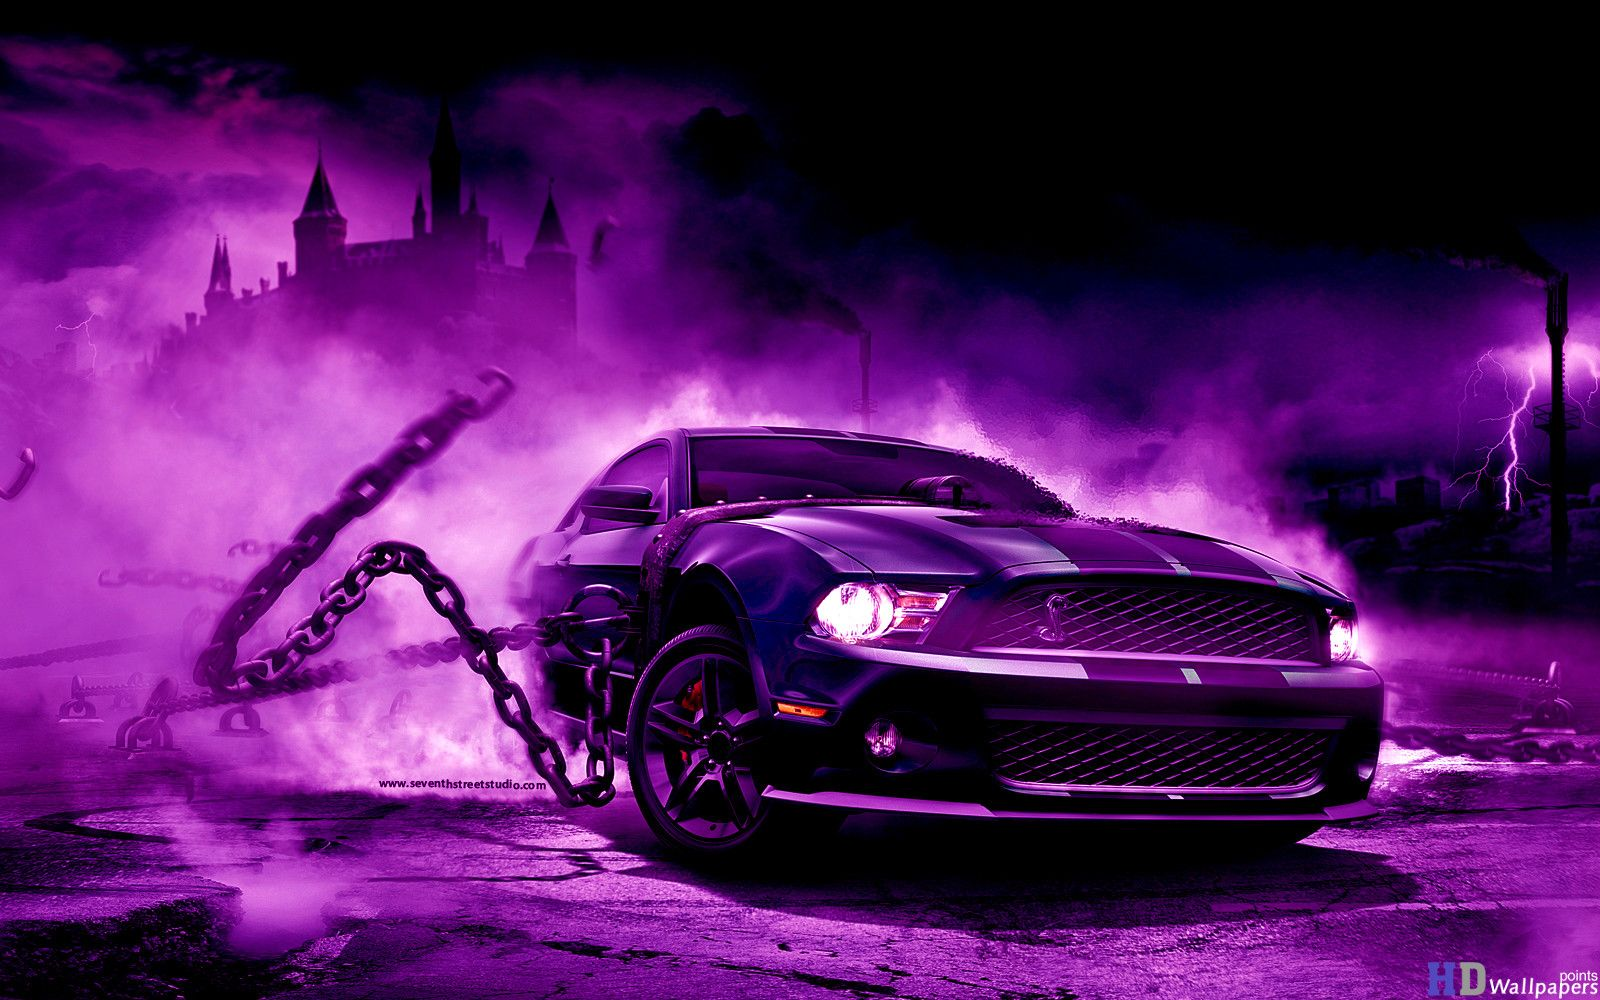 Cool Car 3d Wallpapers HD Background Desktop #14500 Wallpaper .